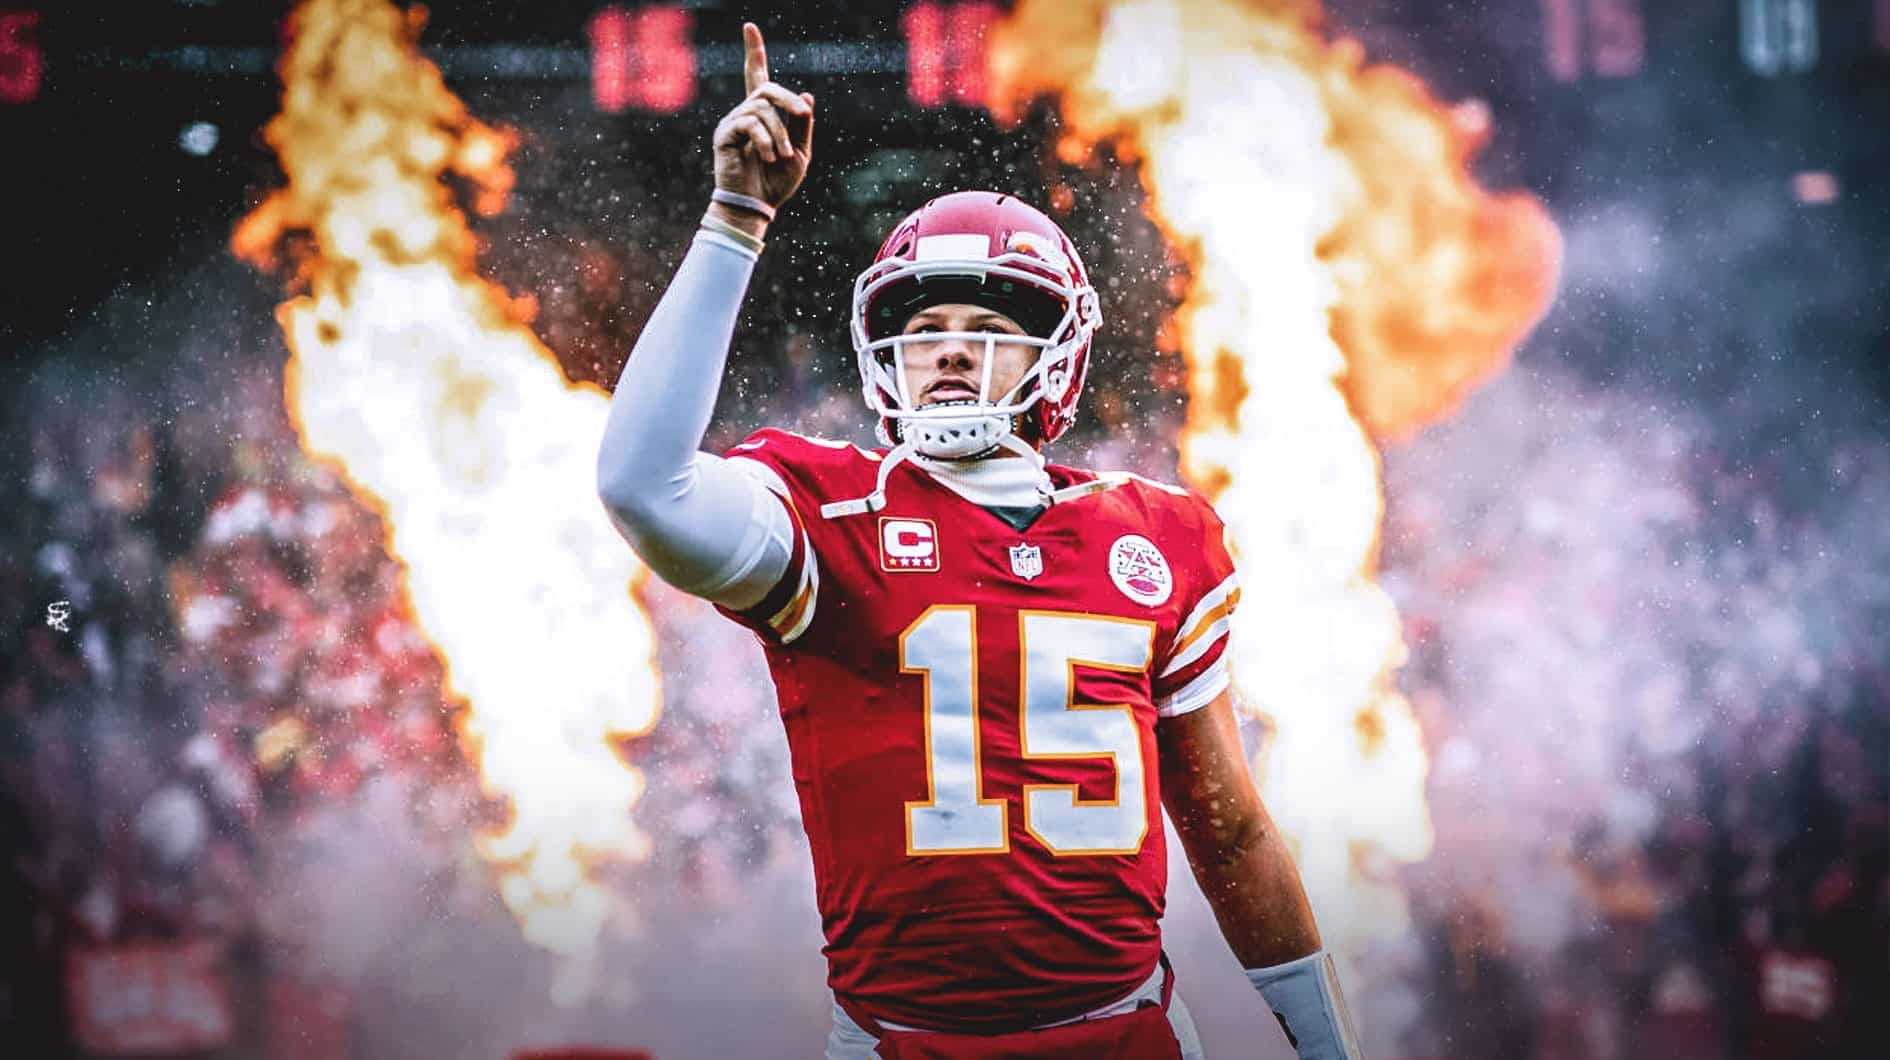 2020 NFL Schedule: What are the top five must-watch games?